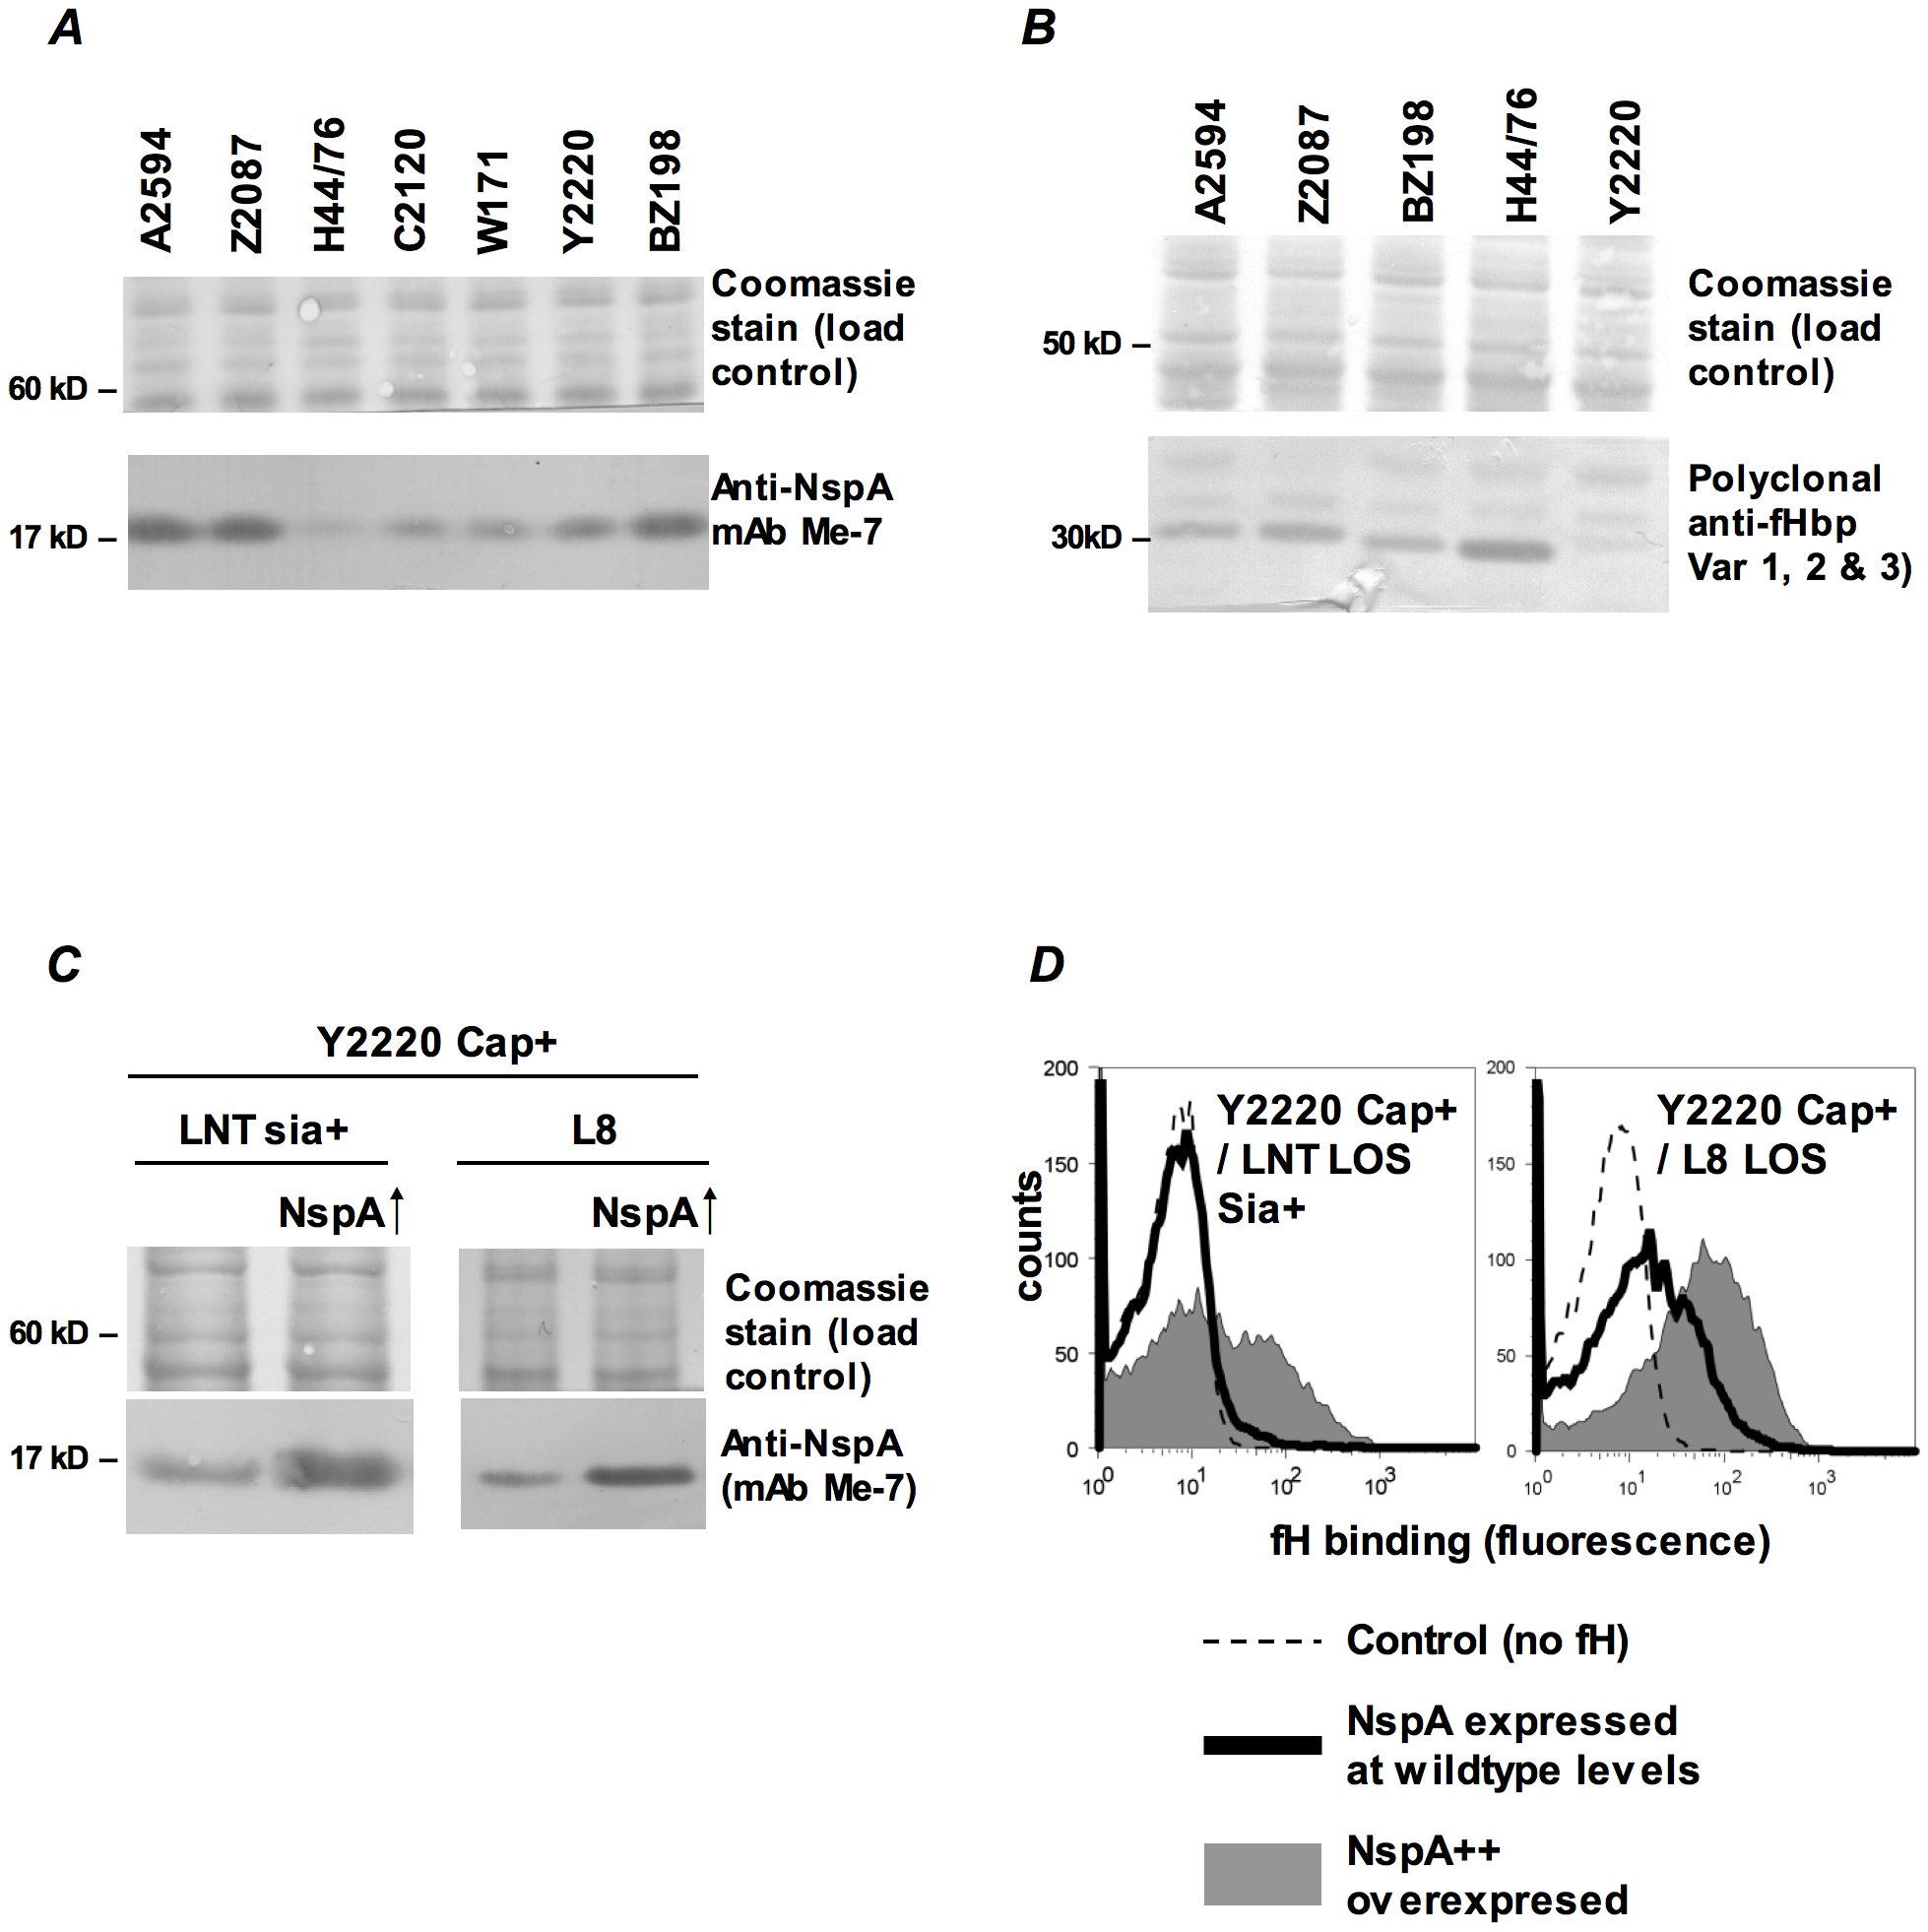 fH binding increases with increasing NspA expression.